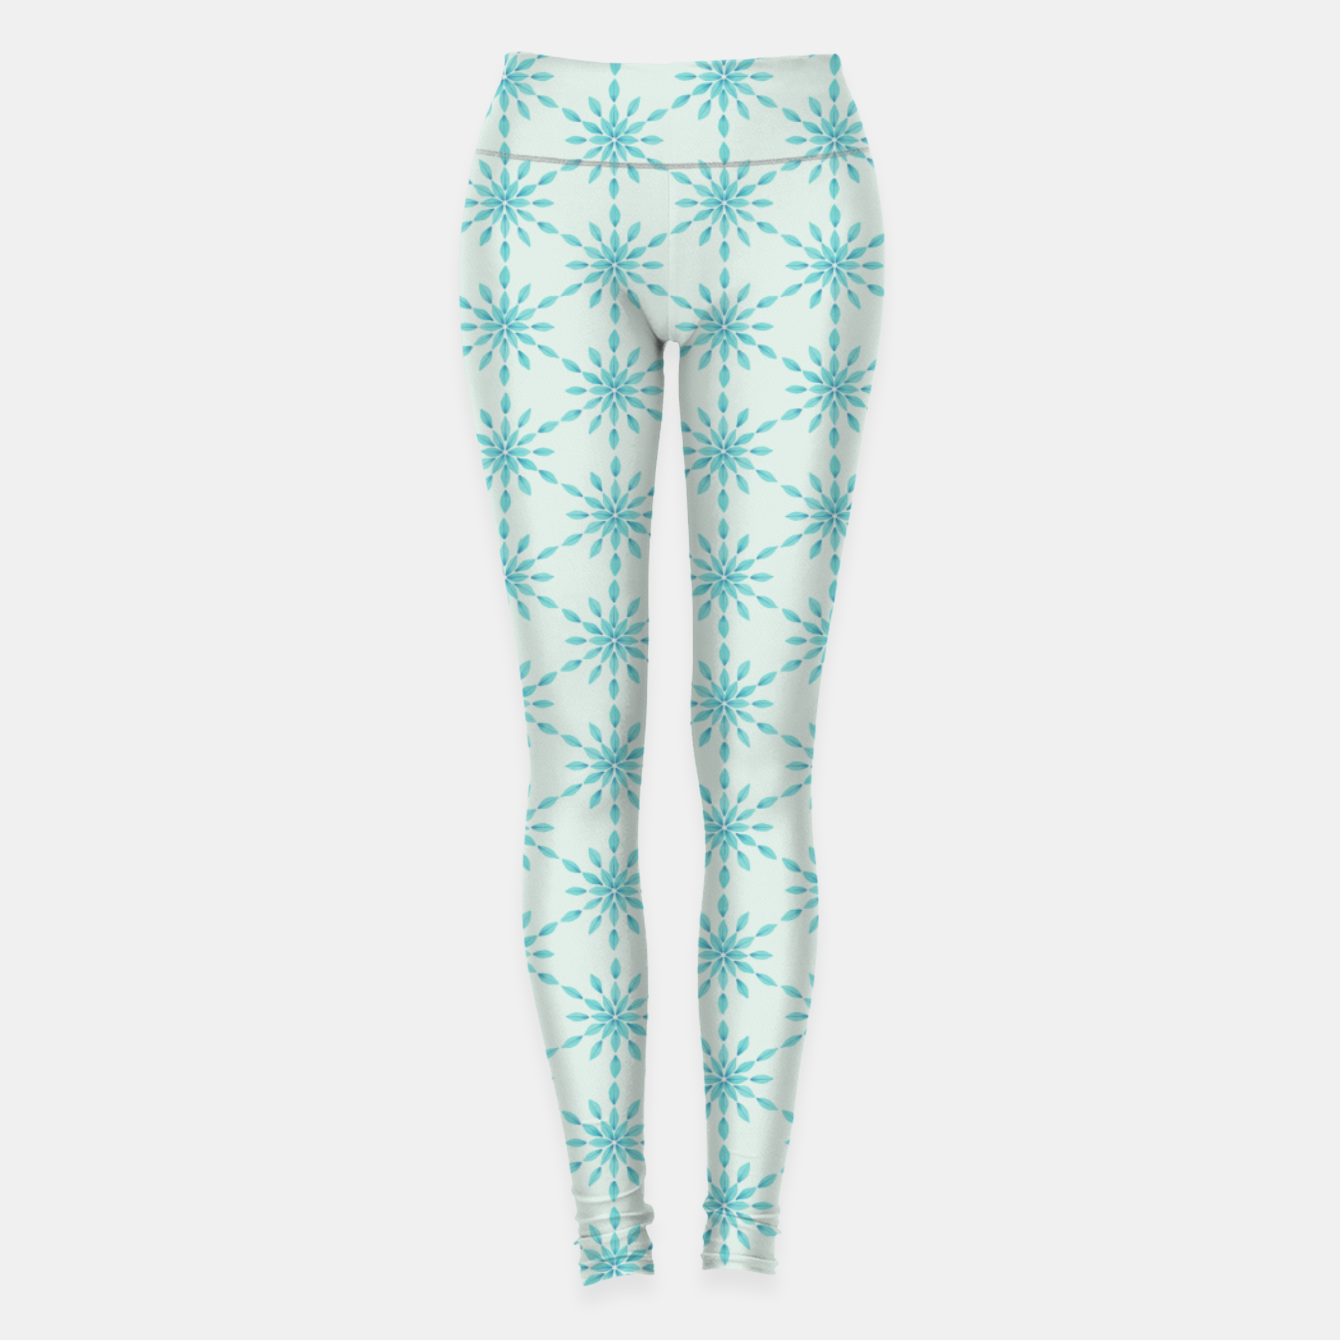 Foto Simple Pretty Hand Painted Watercolor Snowflakes Winter Holiday Pattern, Turquoise, Teal, Mint Color Leggings - Live Heroes